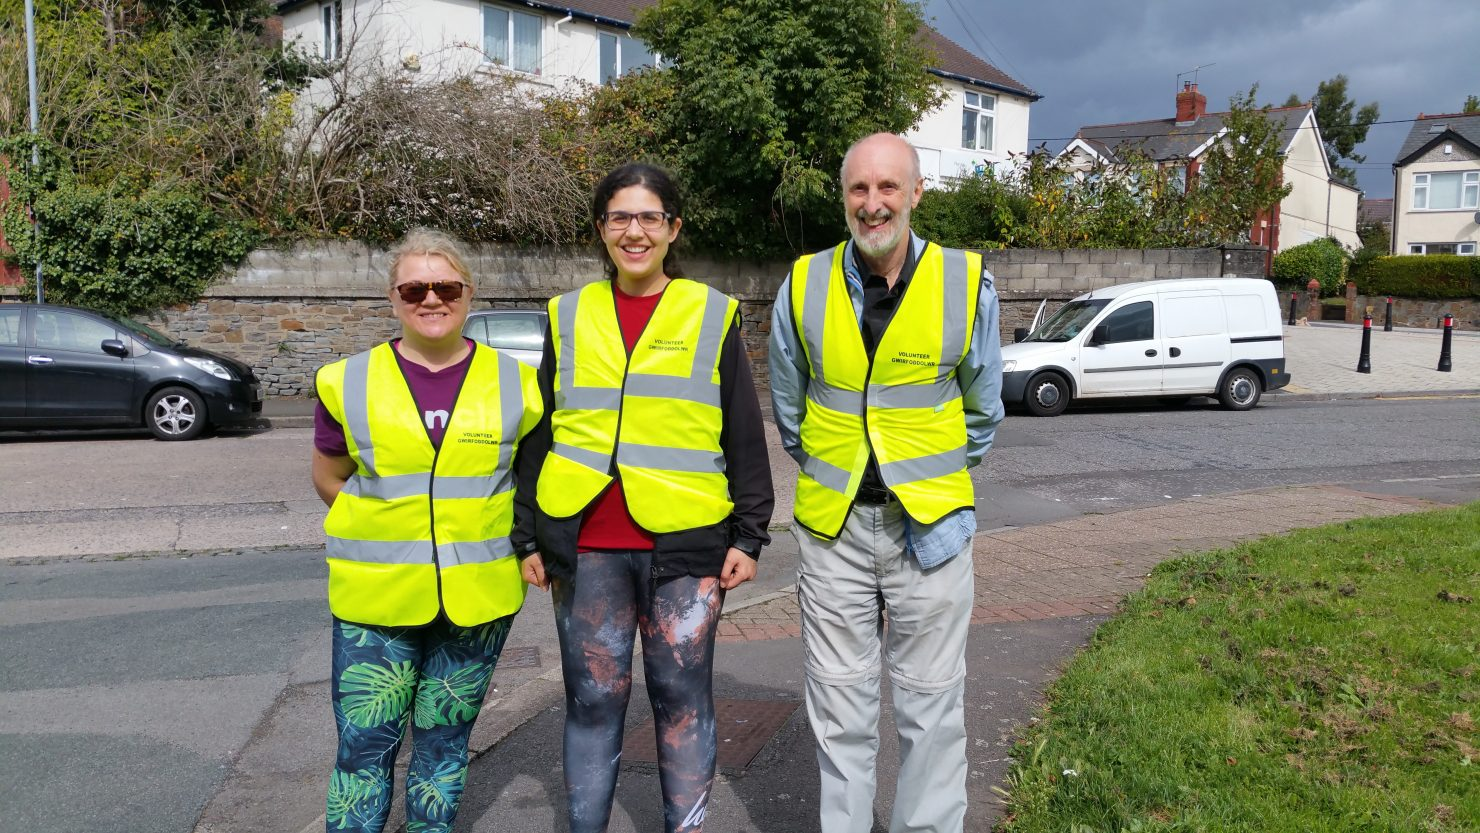 Rumney Old Library - community litter pick